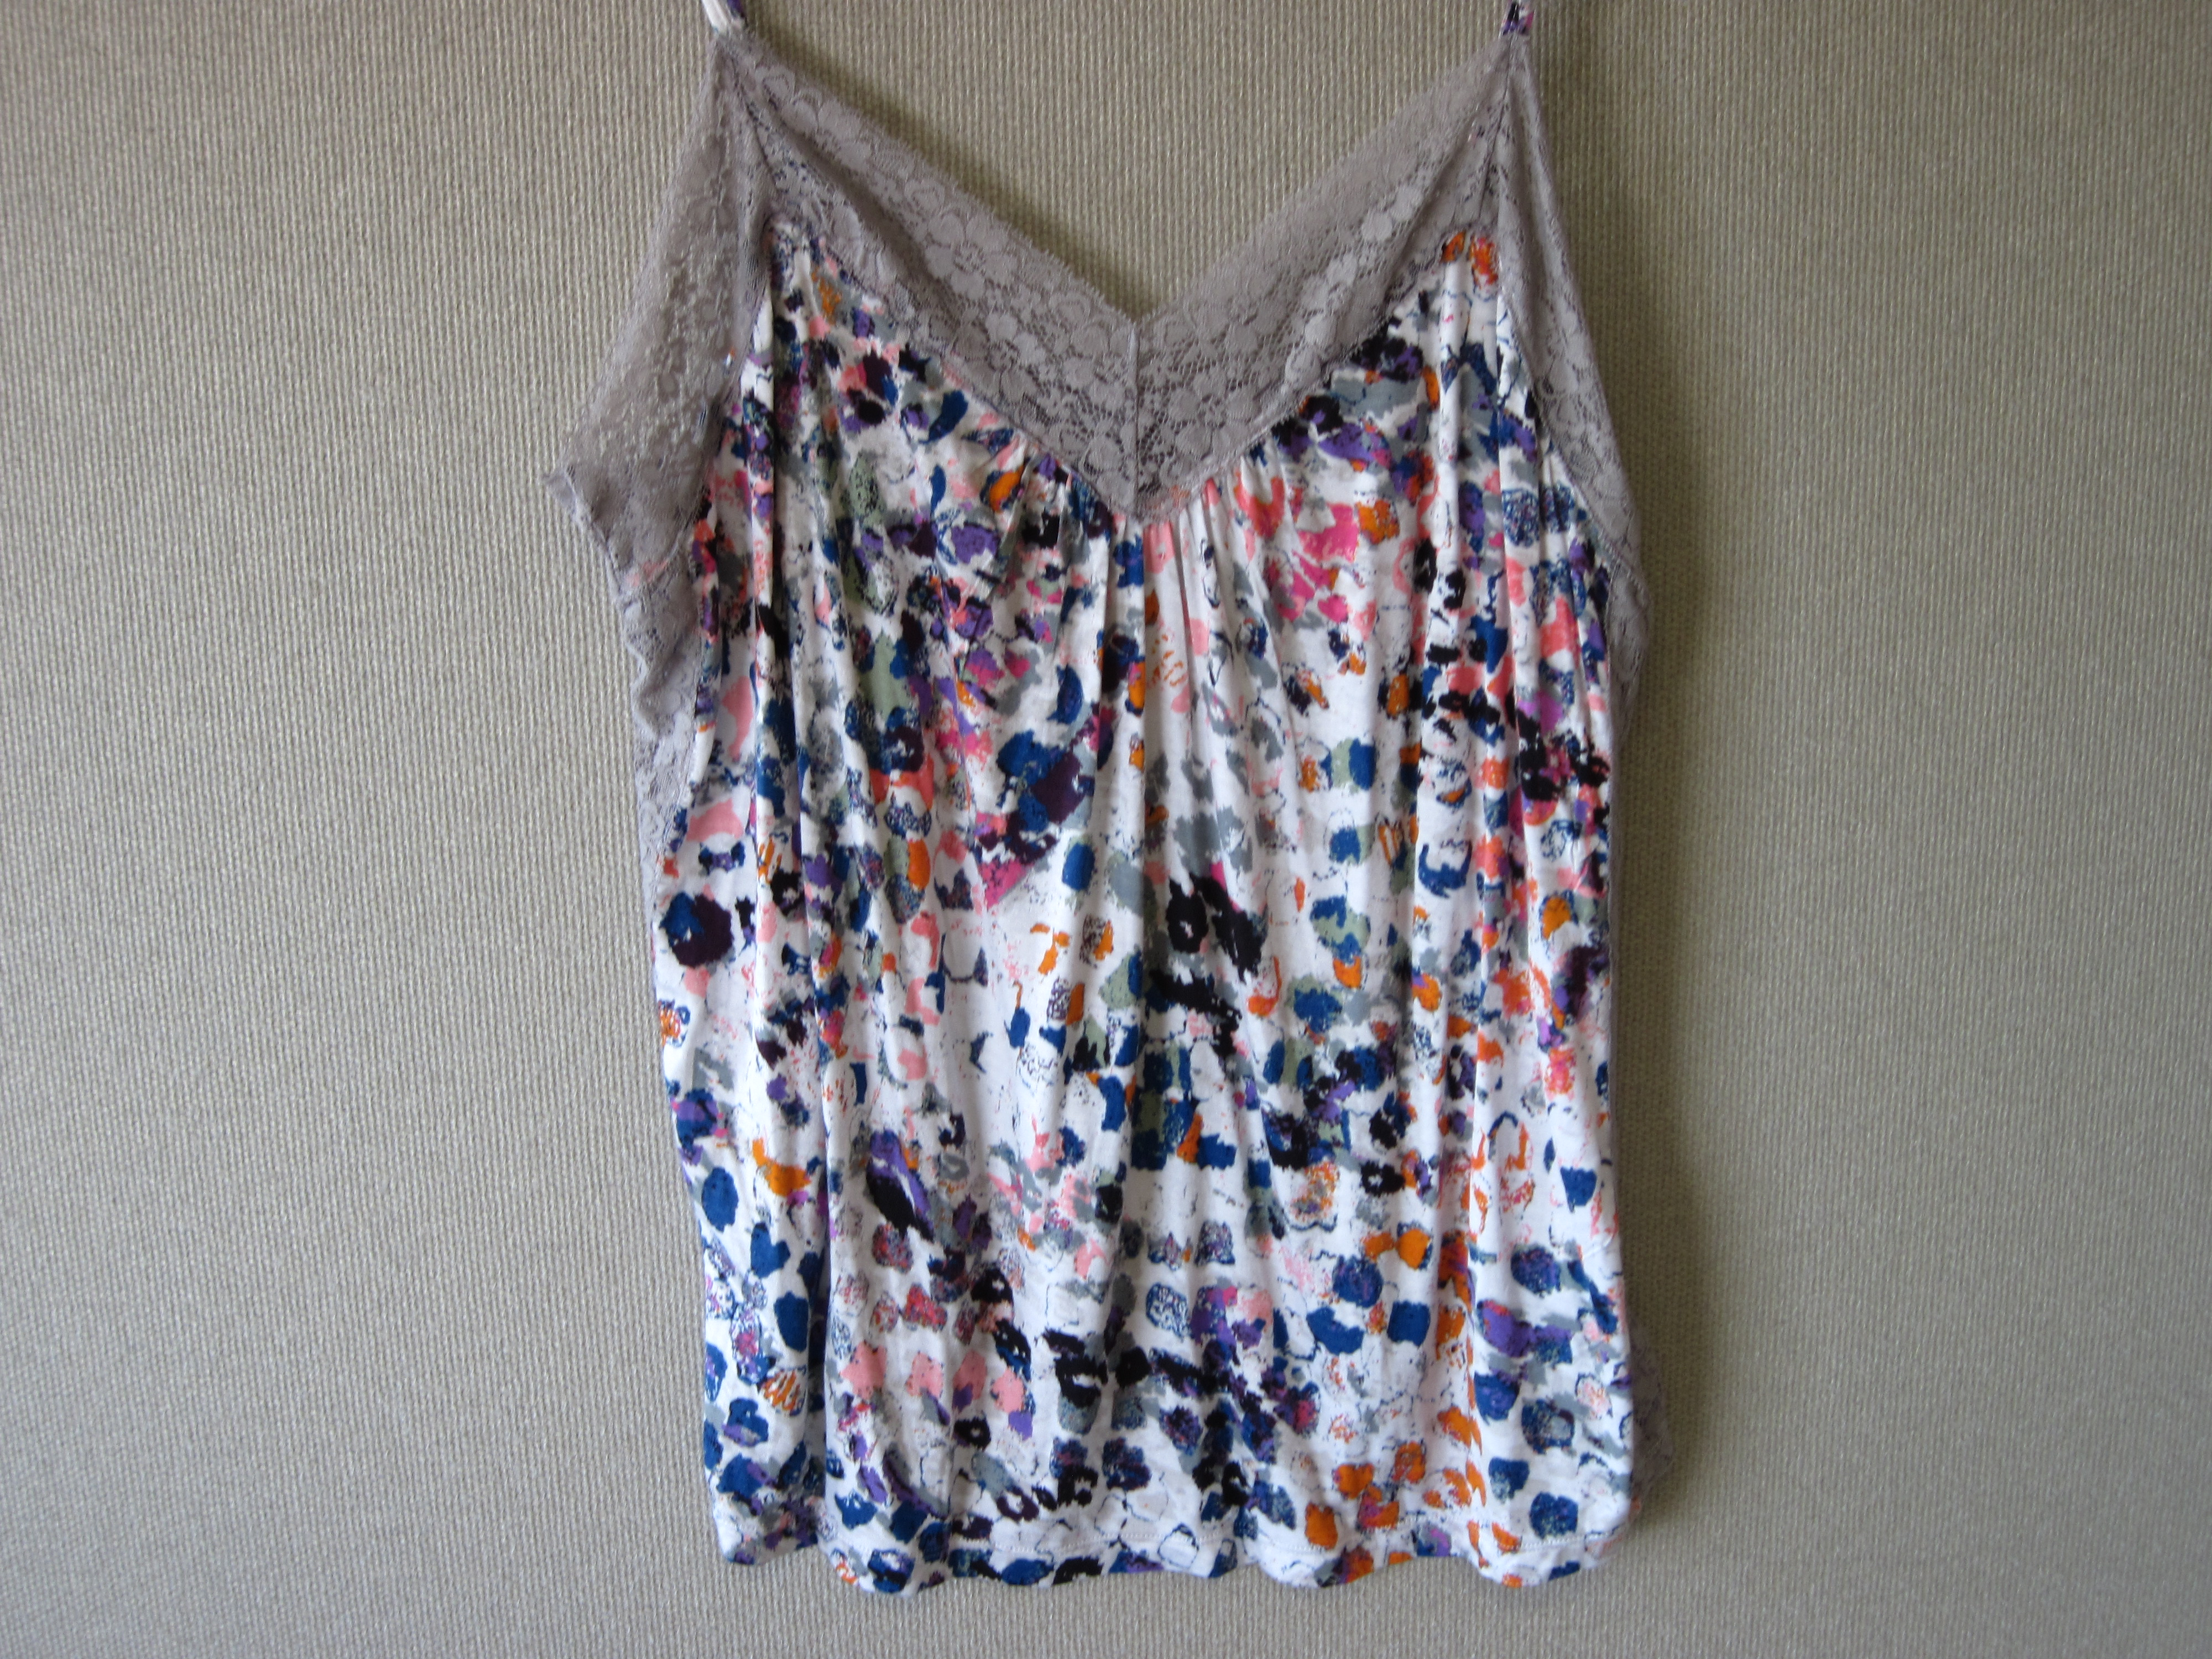 Sofia Vergara SzXL Lace Trim Cami Multi-Colored